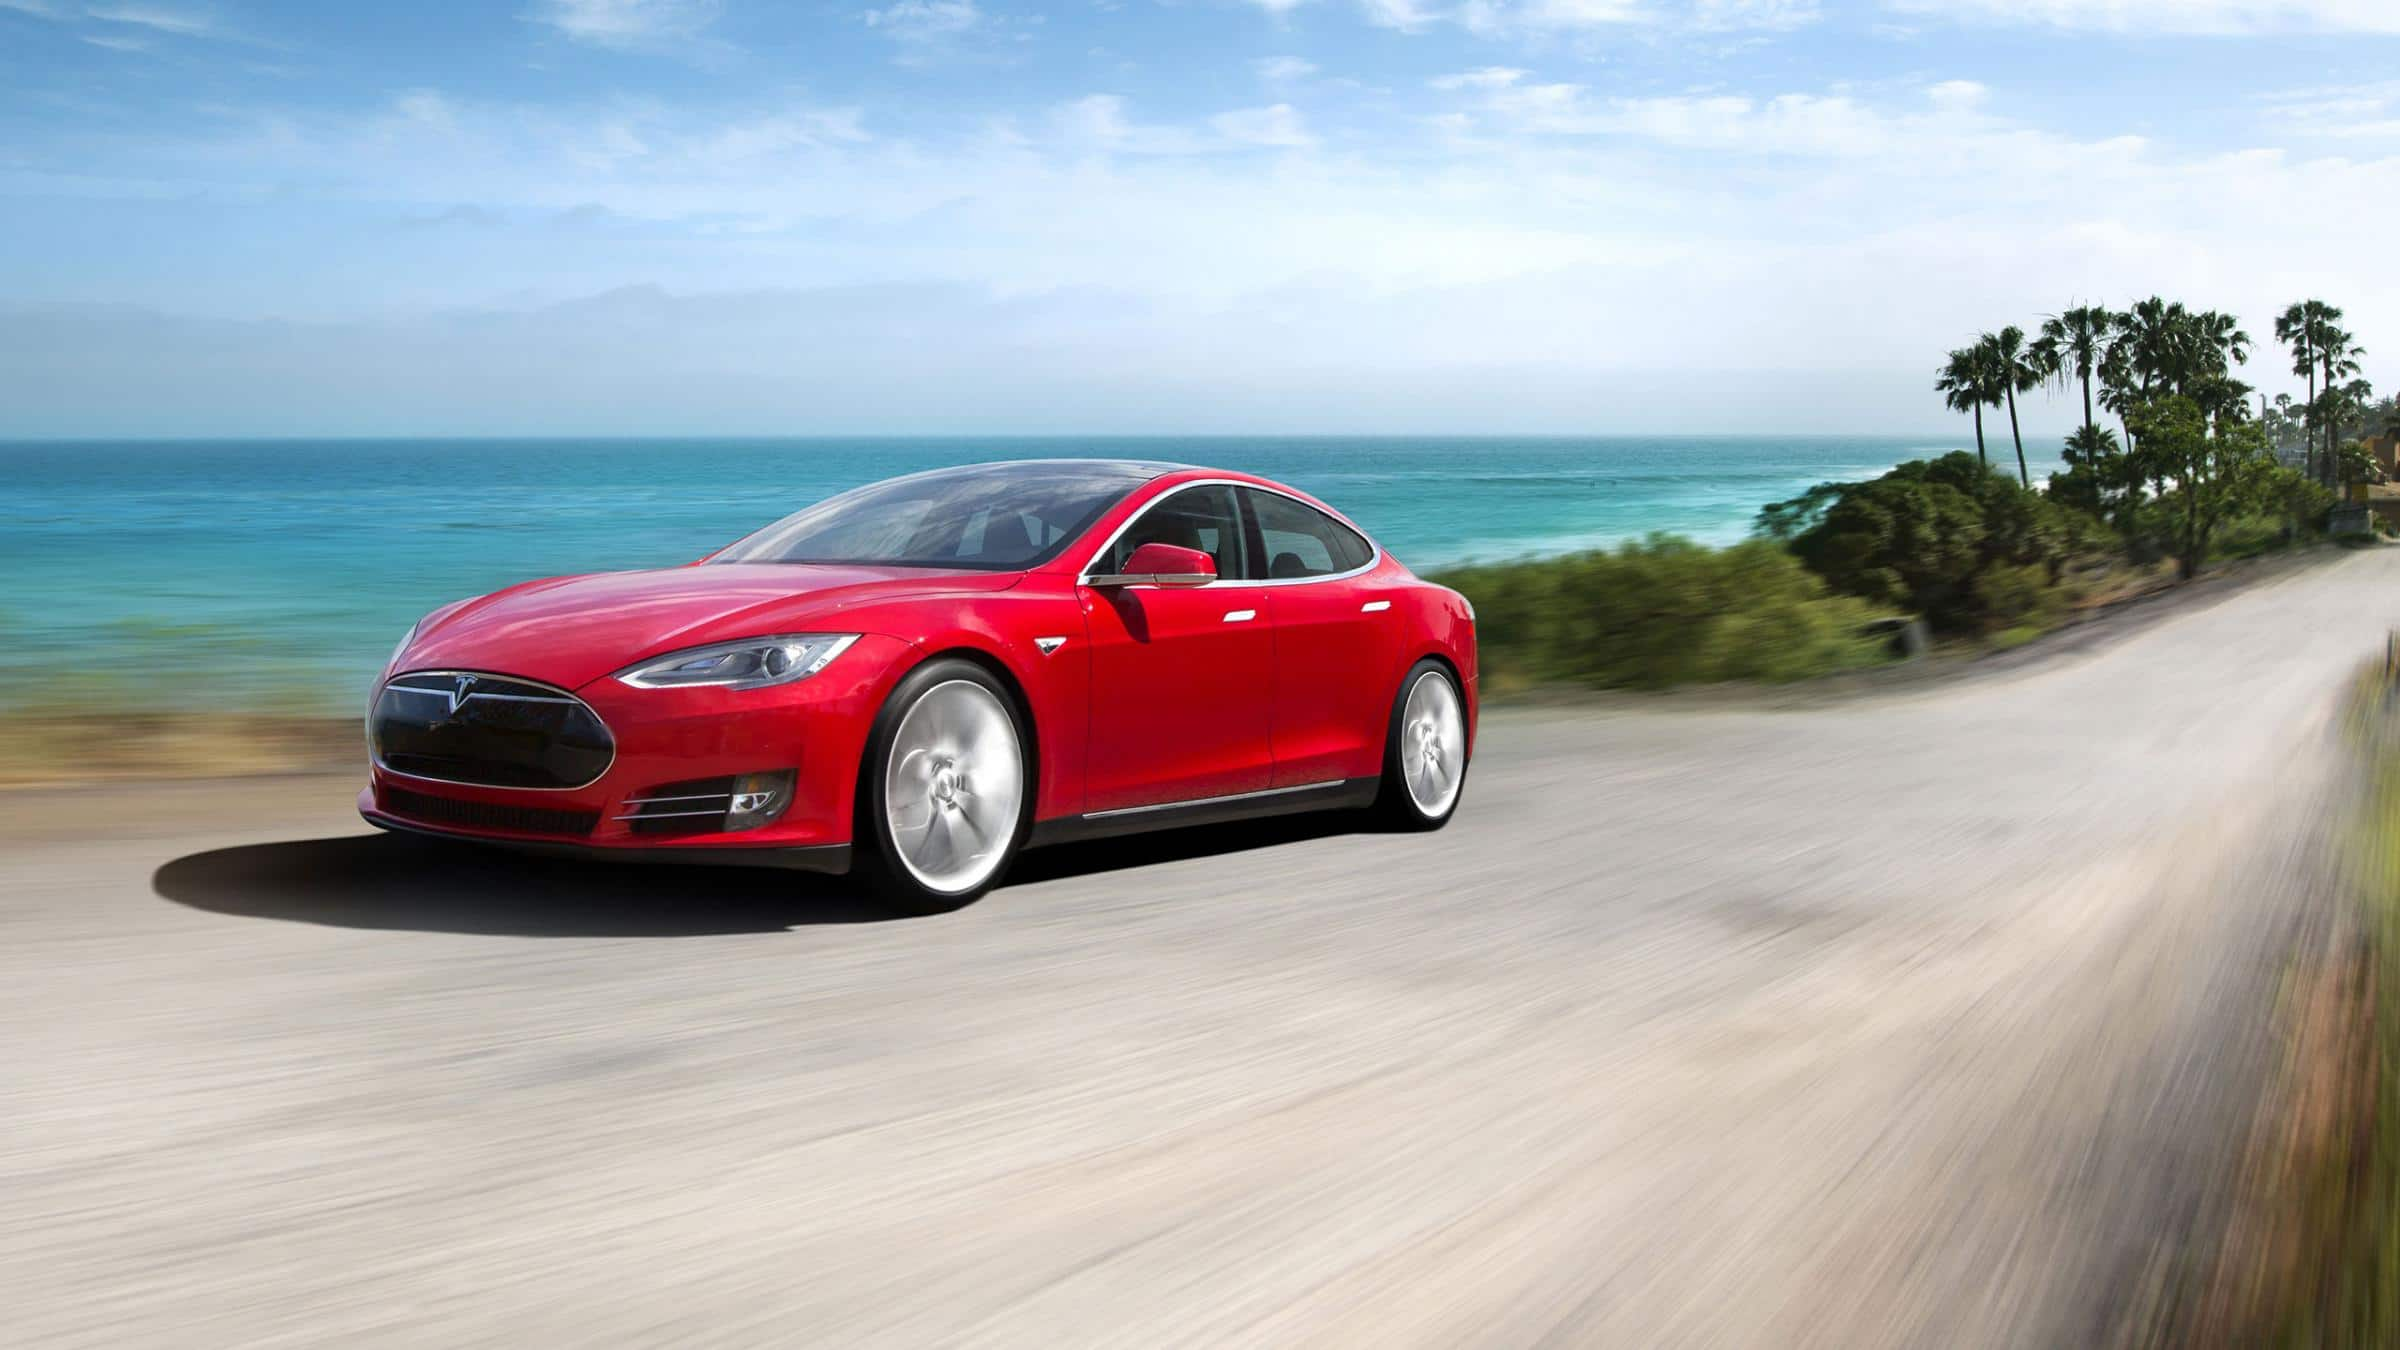 http://www.teslamotors.com/sites/default/files/blog_images/model-s-photo-gallery-01.jpg